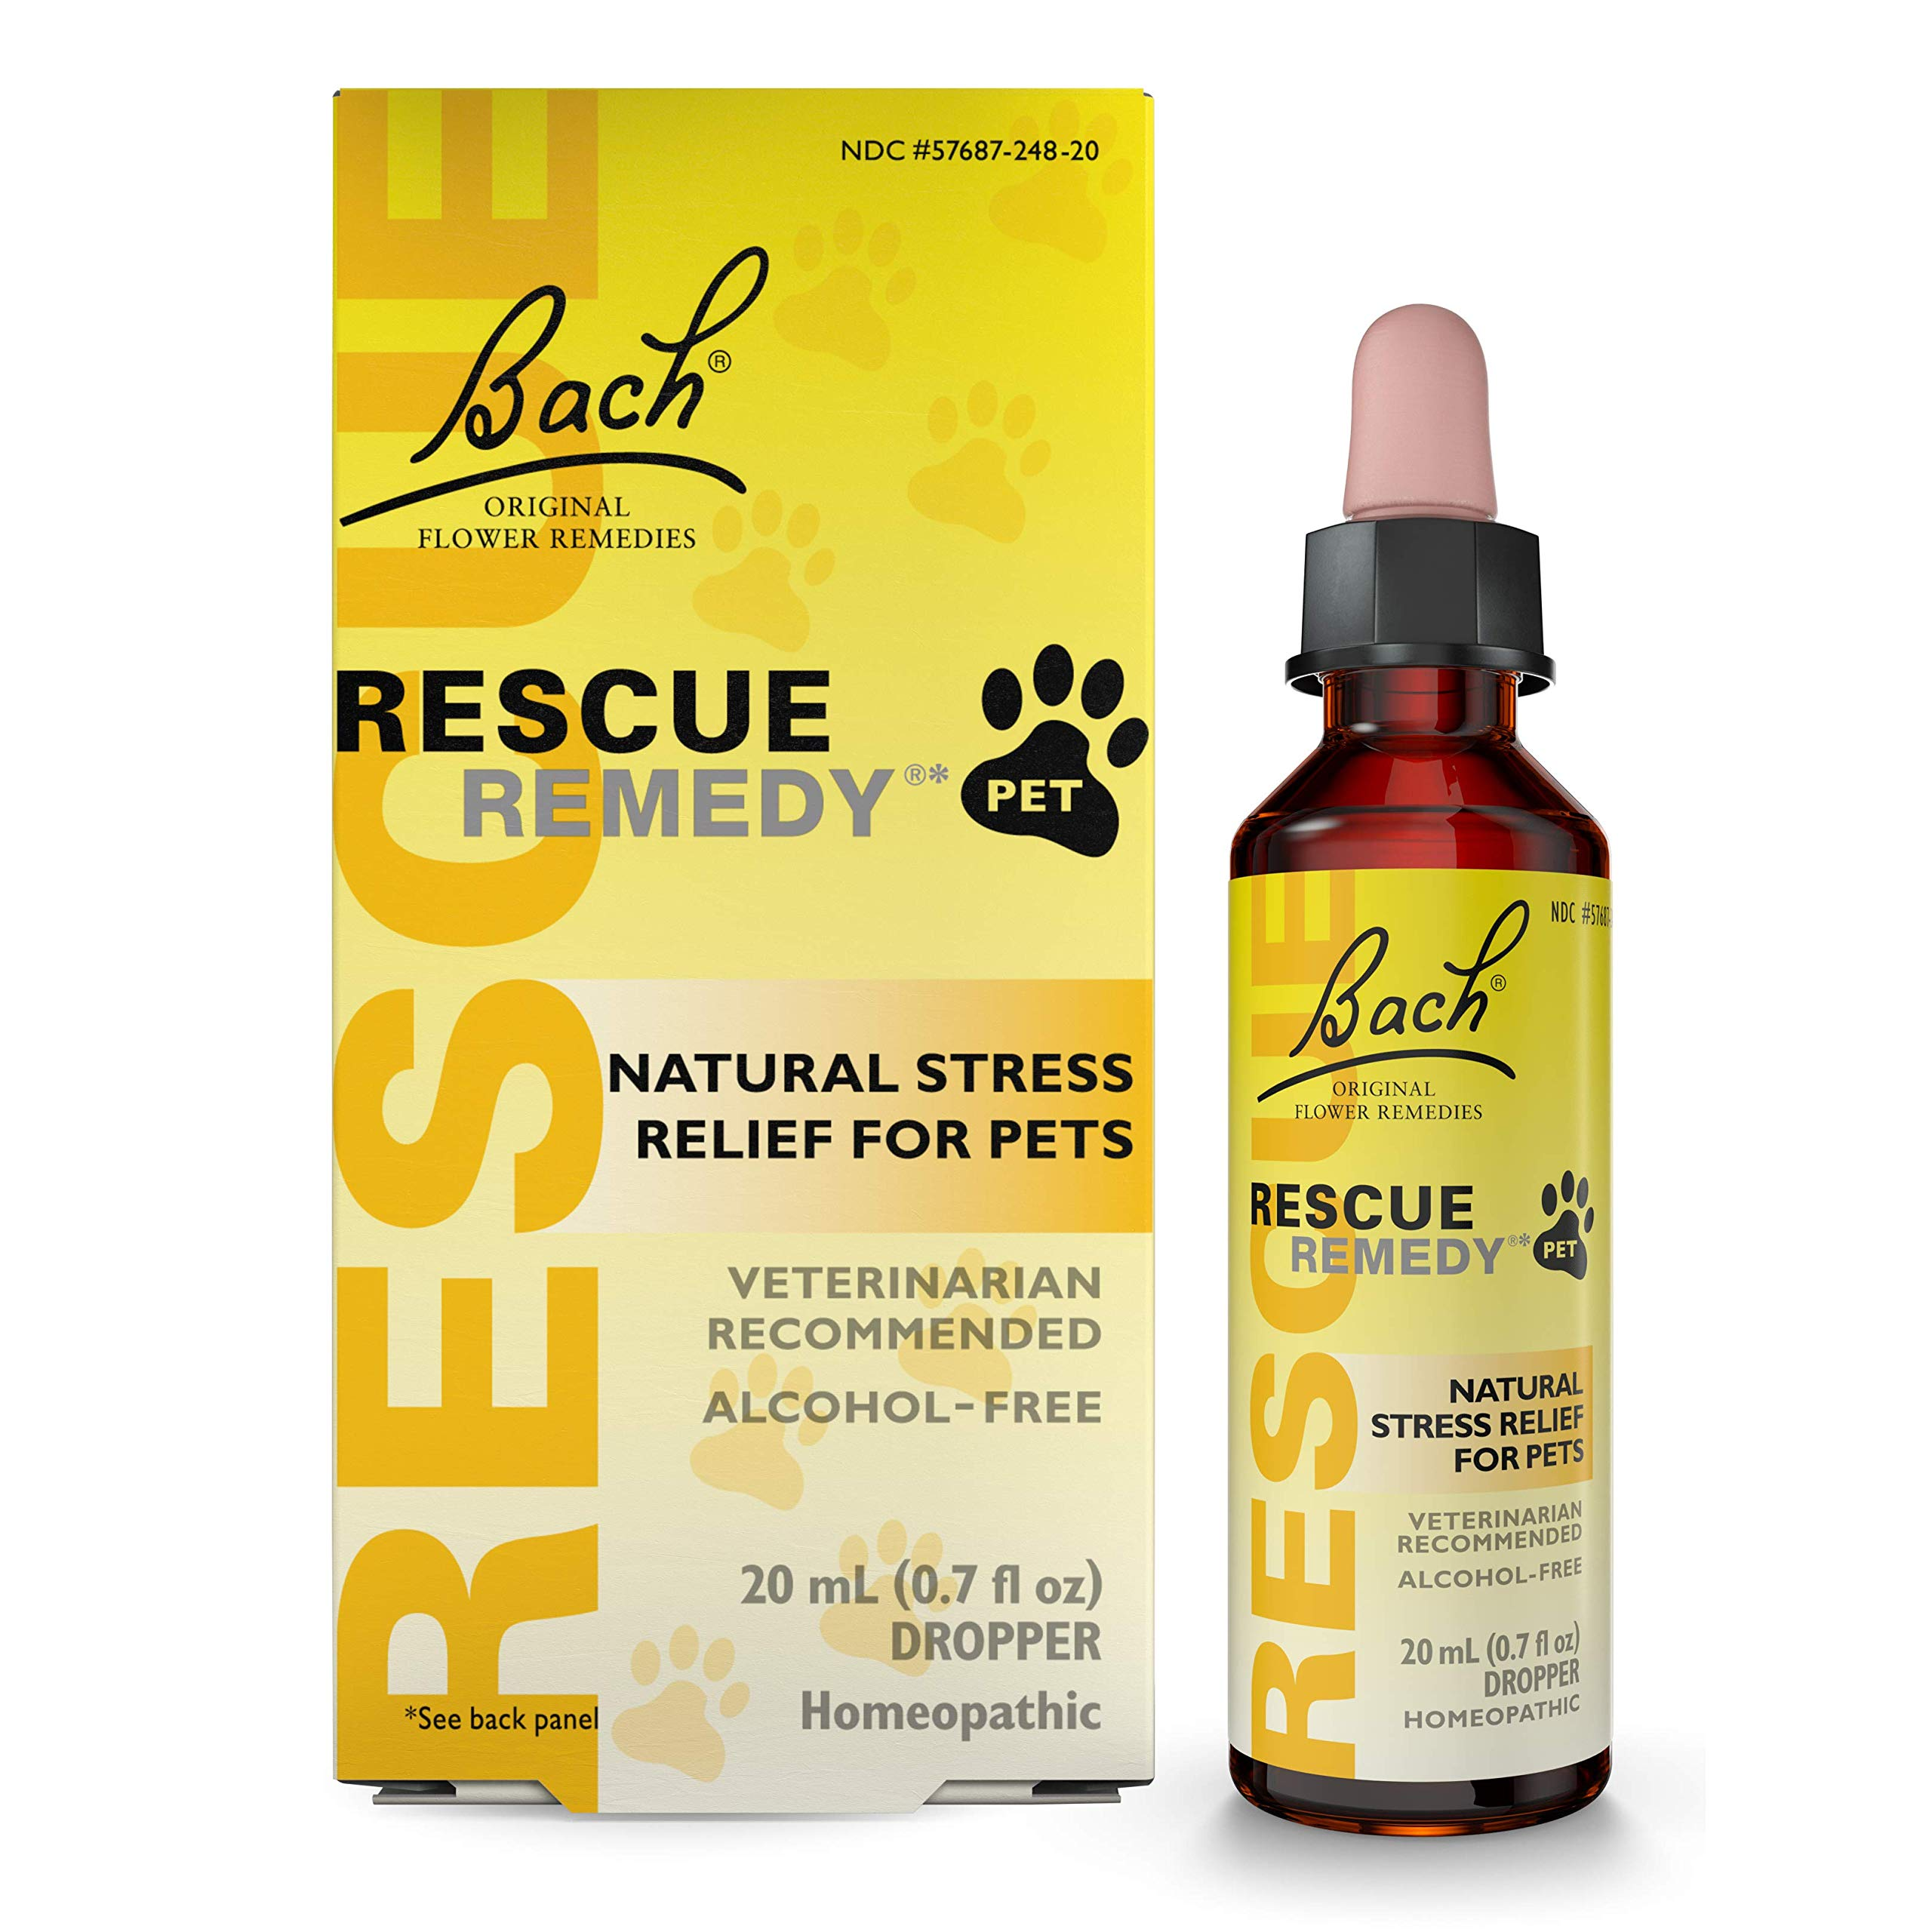 Rescue Remedy For Dogs Uk Reviews